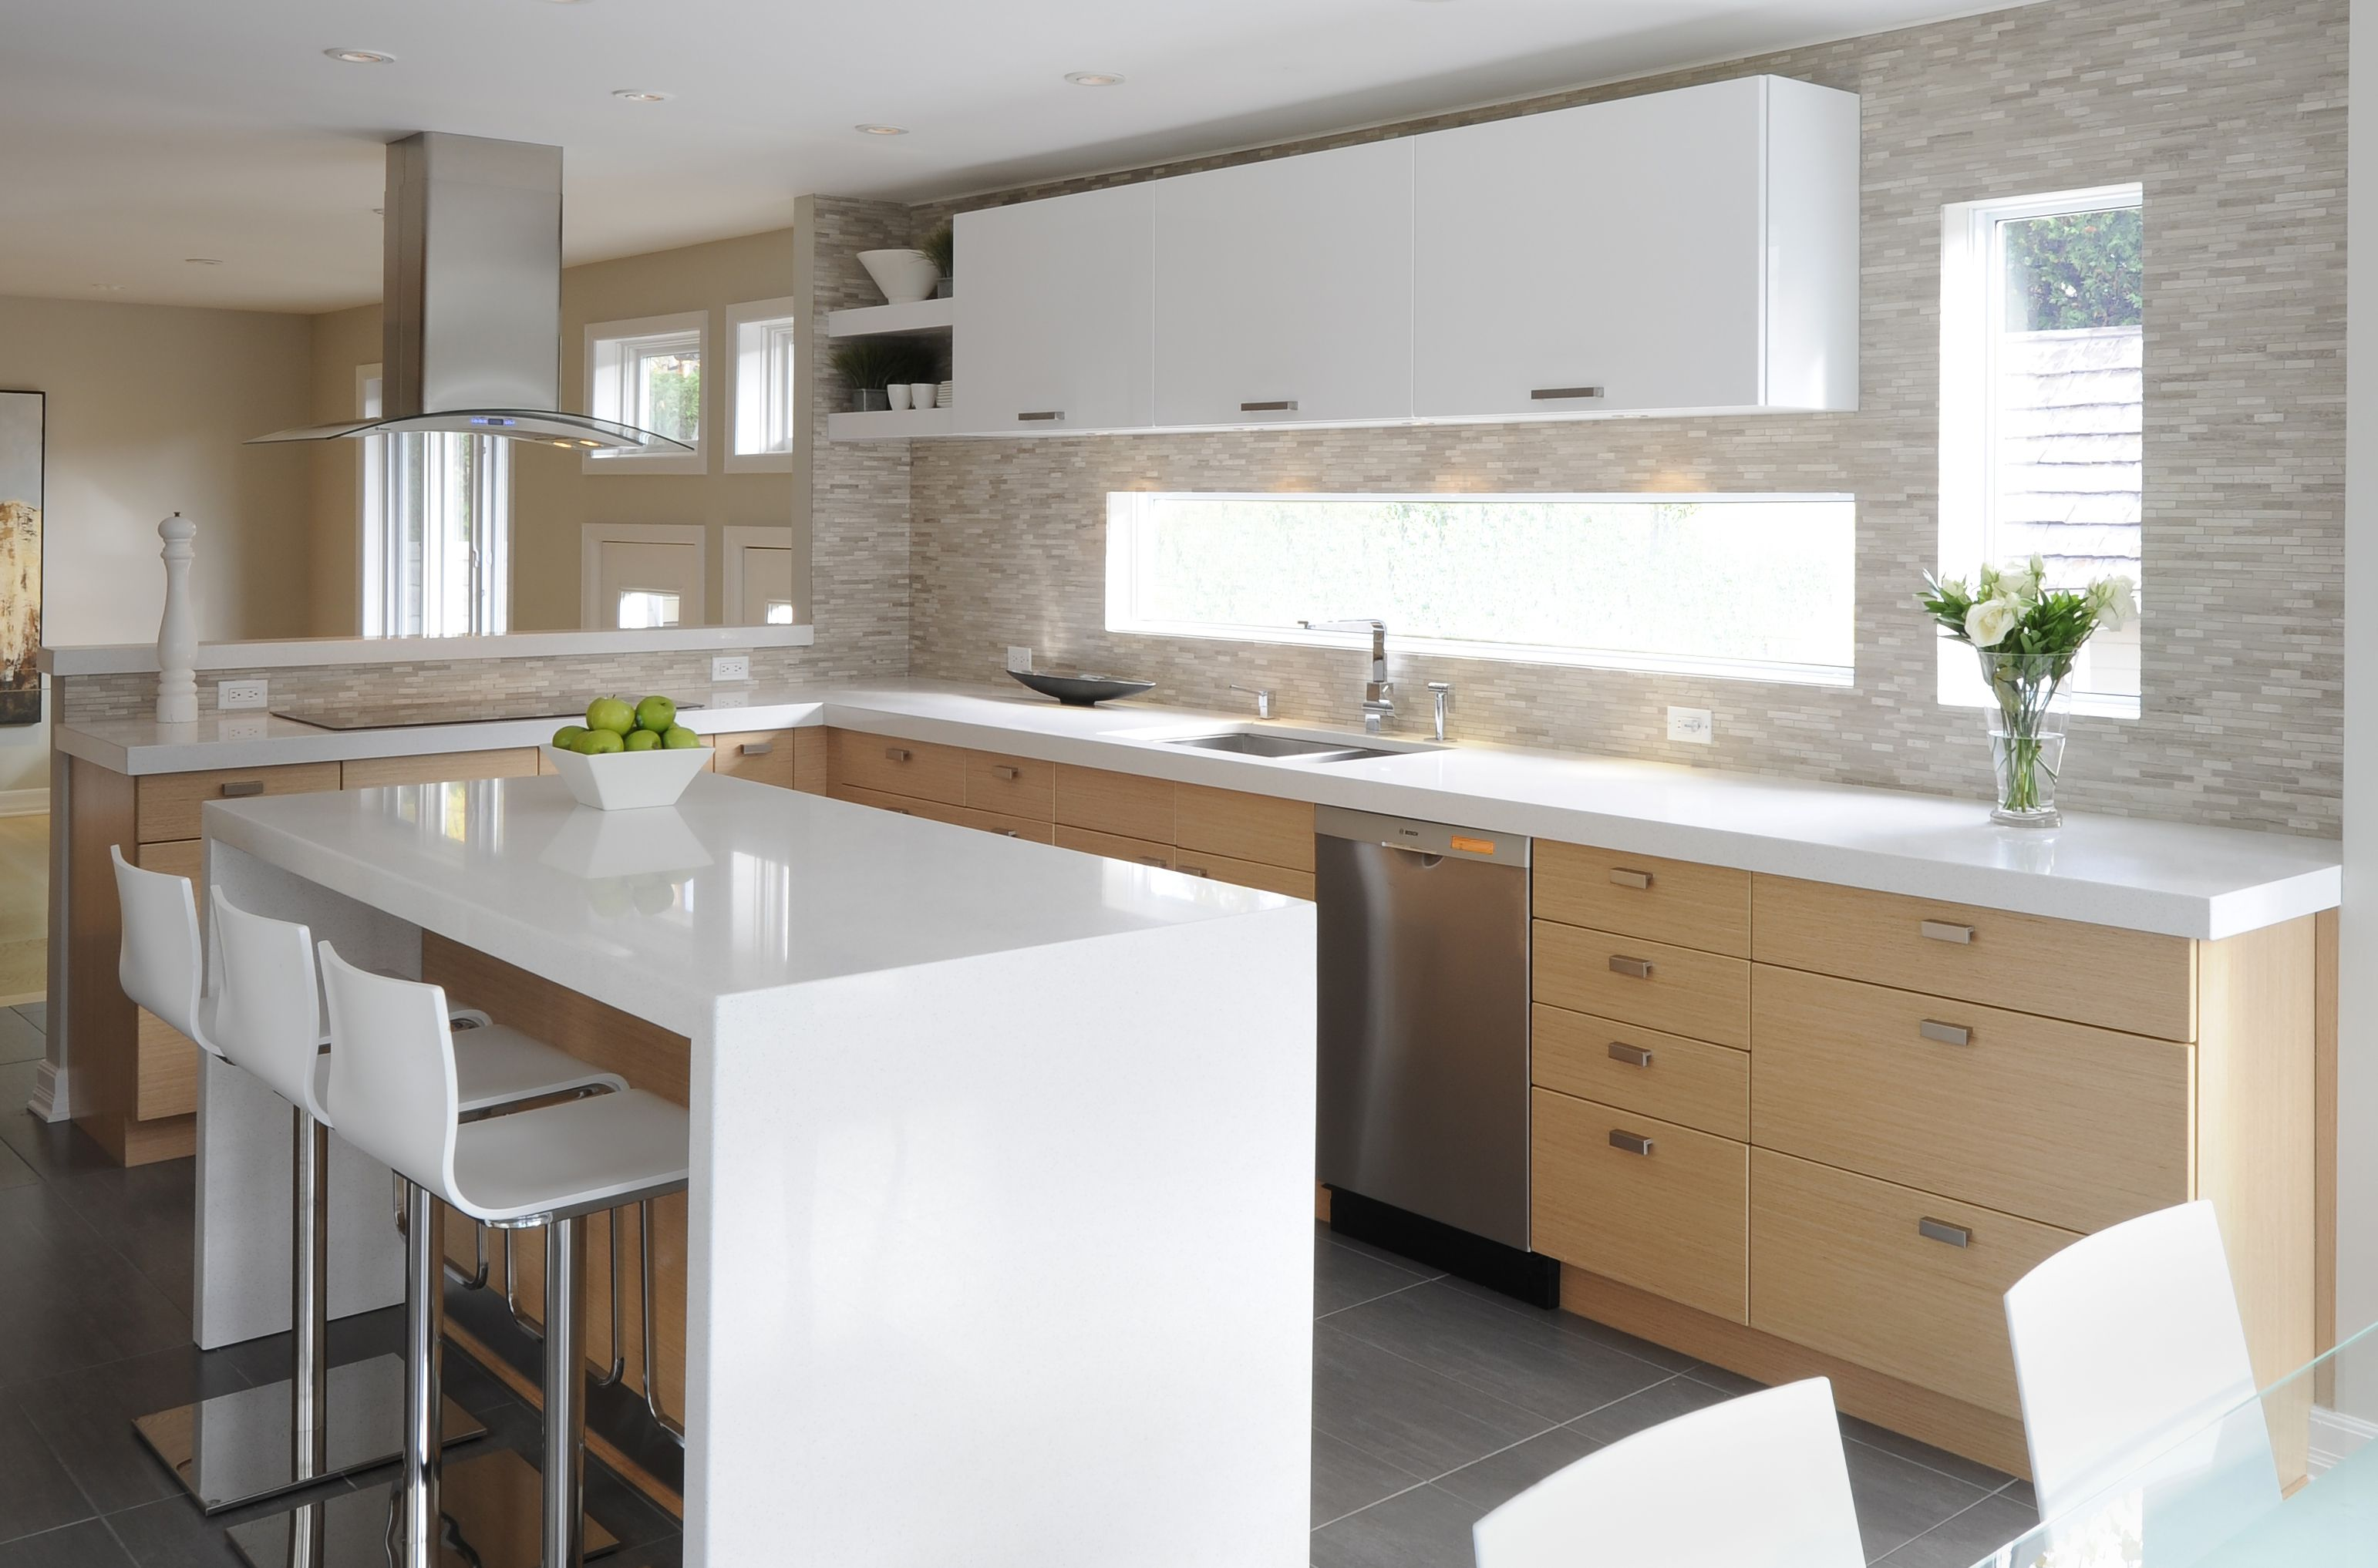 Modern European Style Kitchen Cabinets Kitchen Design White Oak Kitchen Oak Kitchen